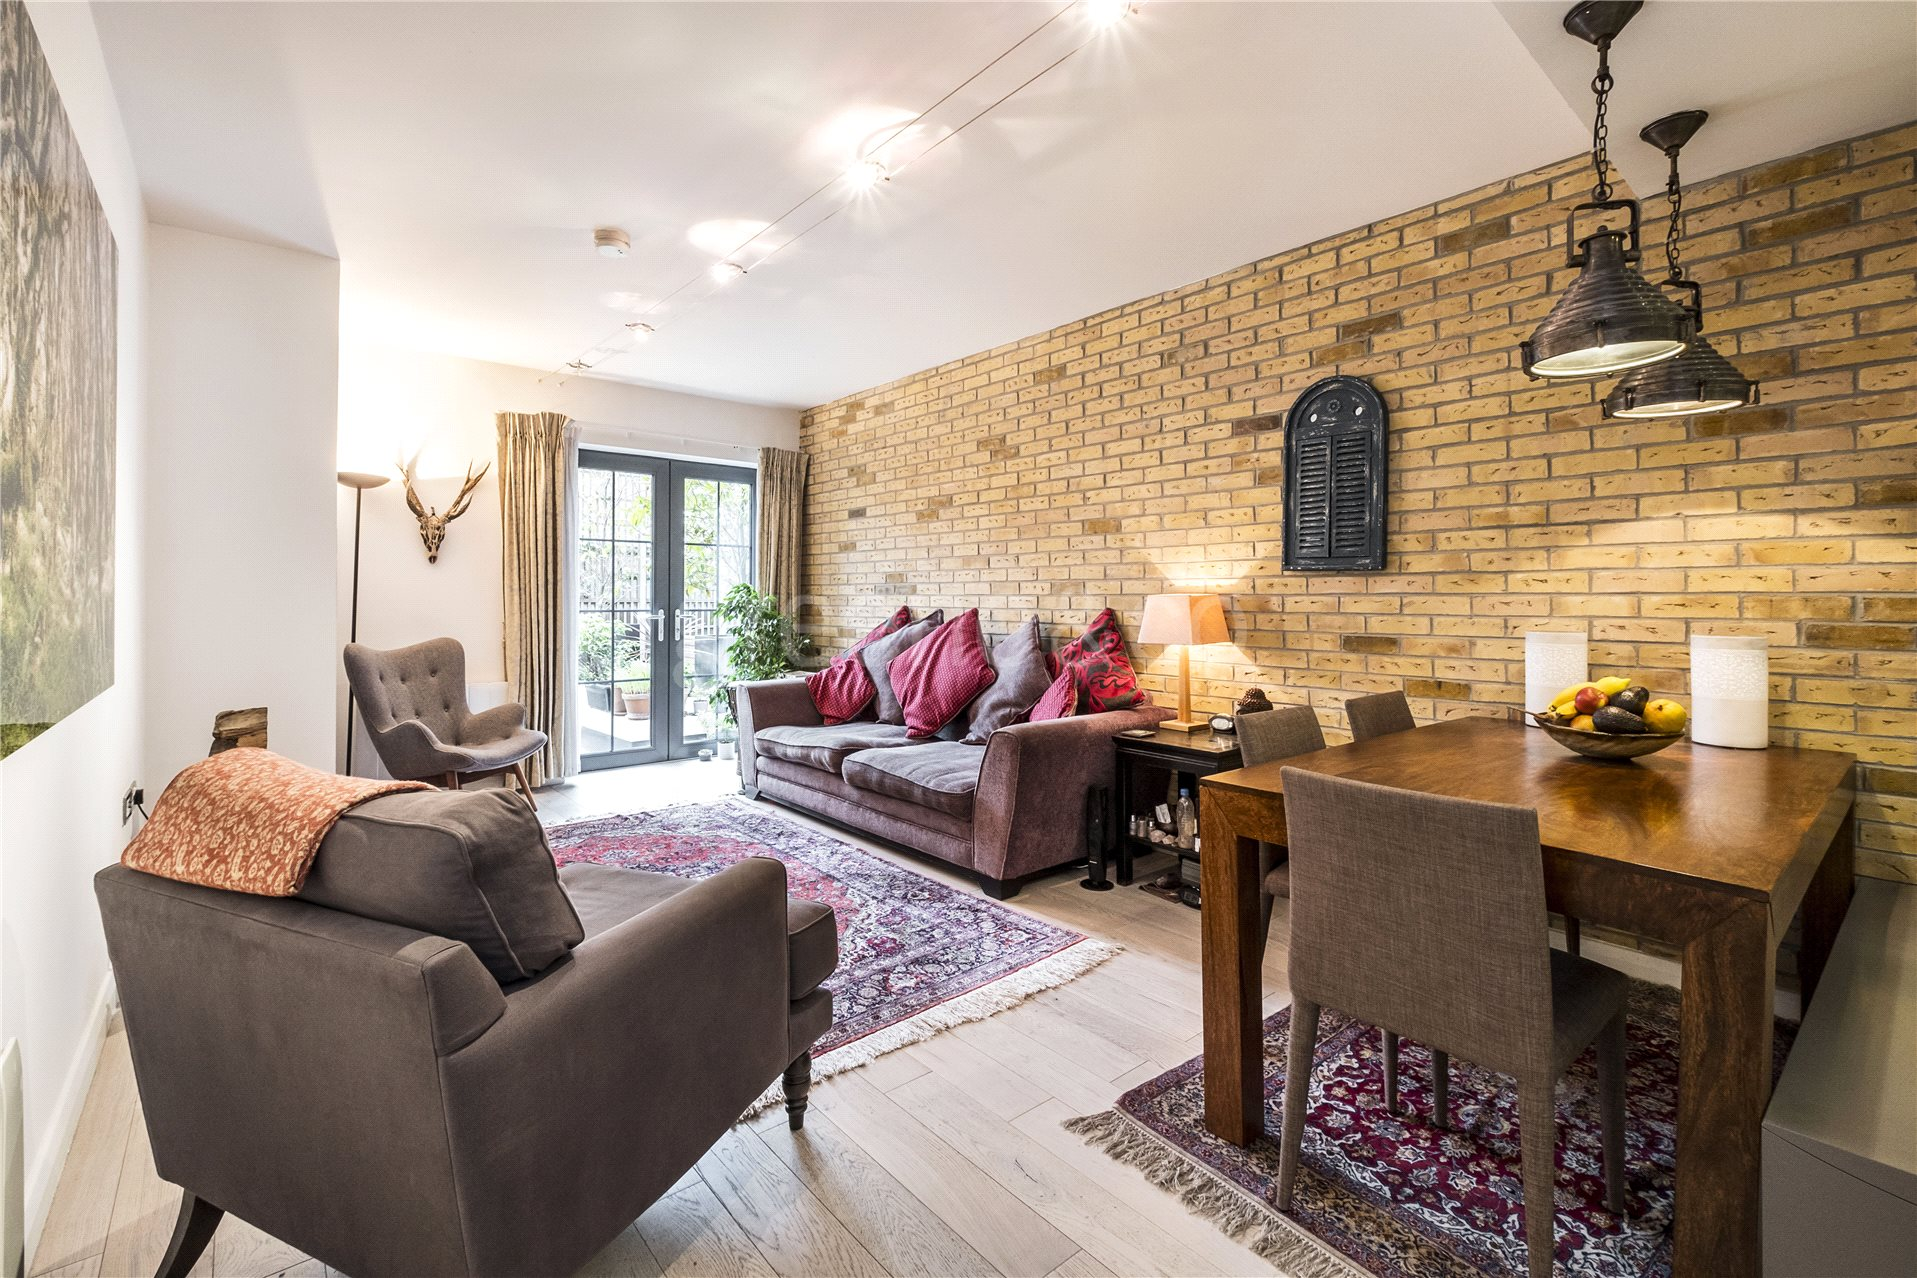 3 Bedrooms House for sale in Colefax Building, 23 Plumbers Row, London, E1